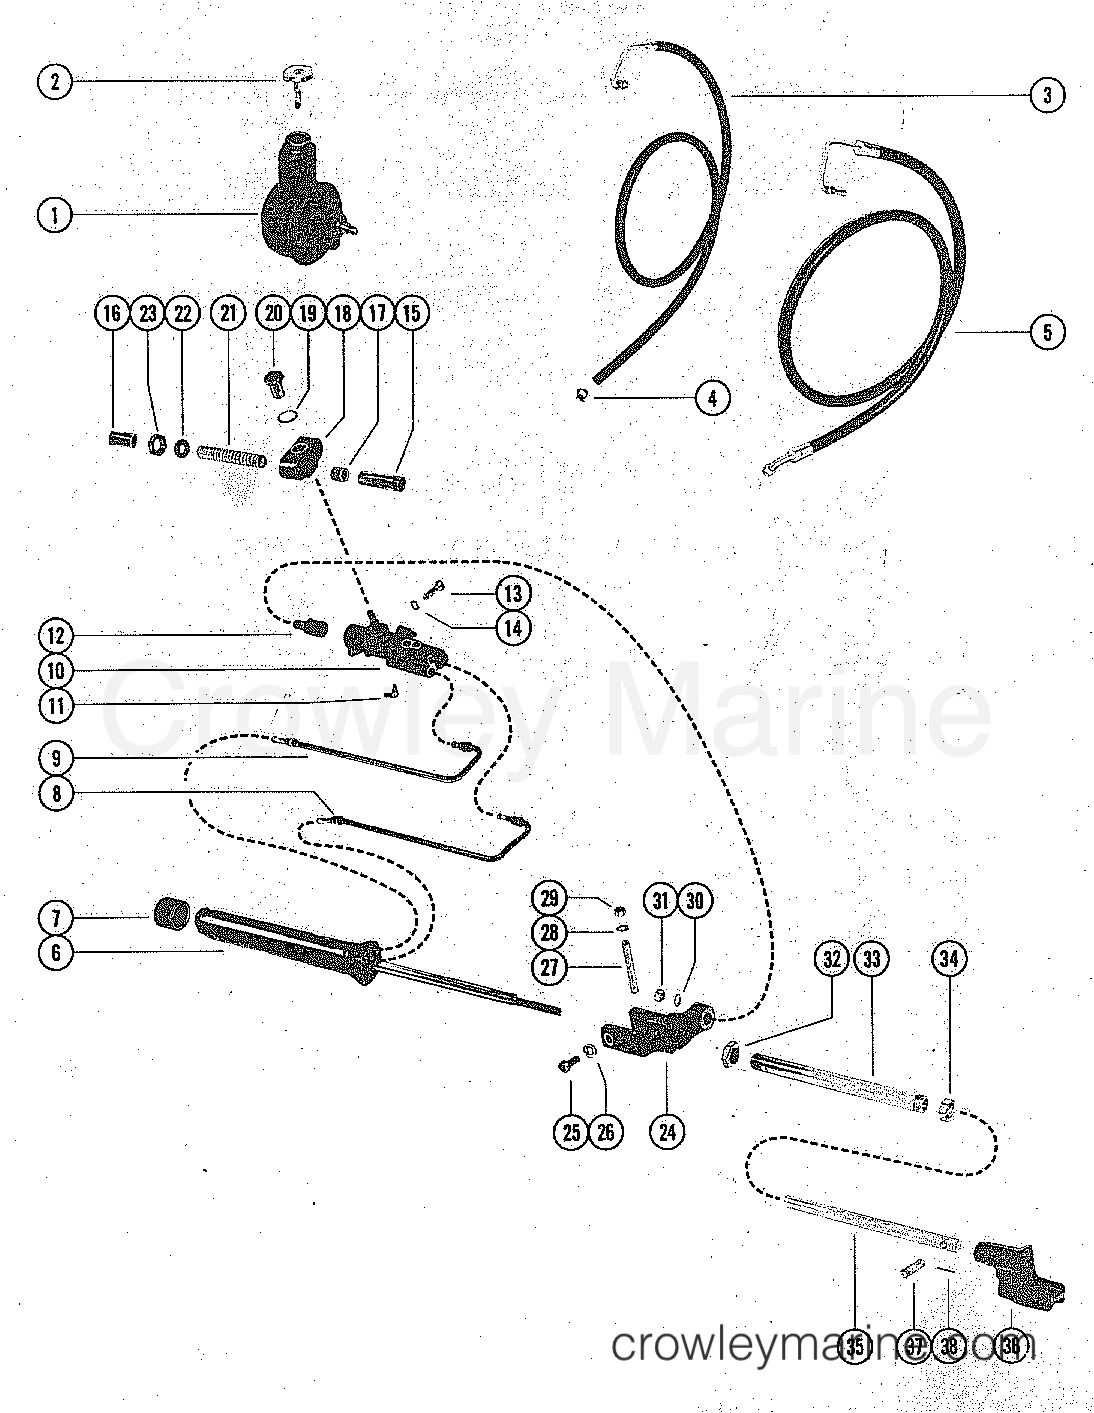 Power Steering Components With Hoses